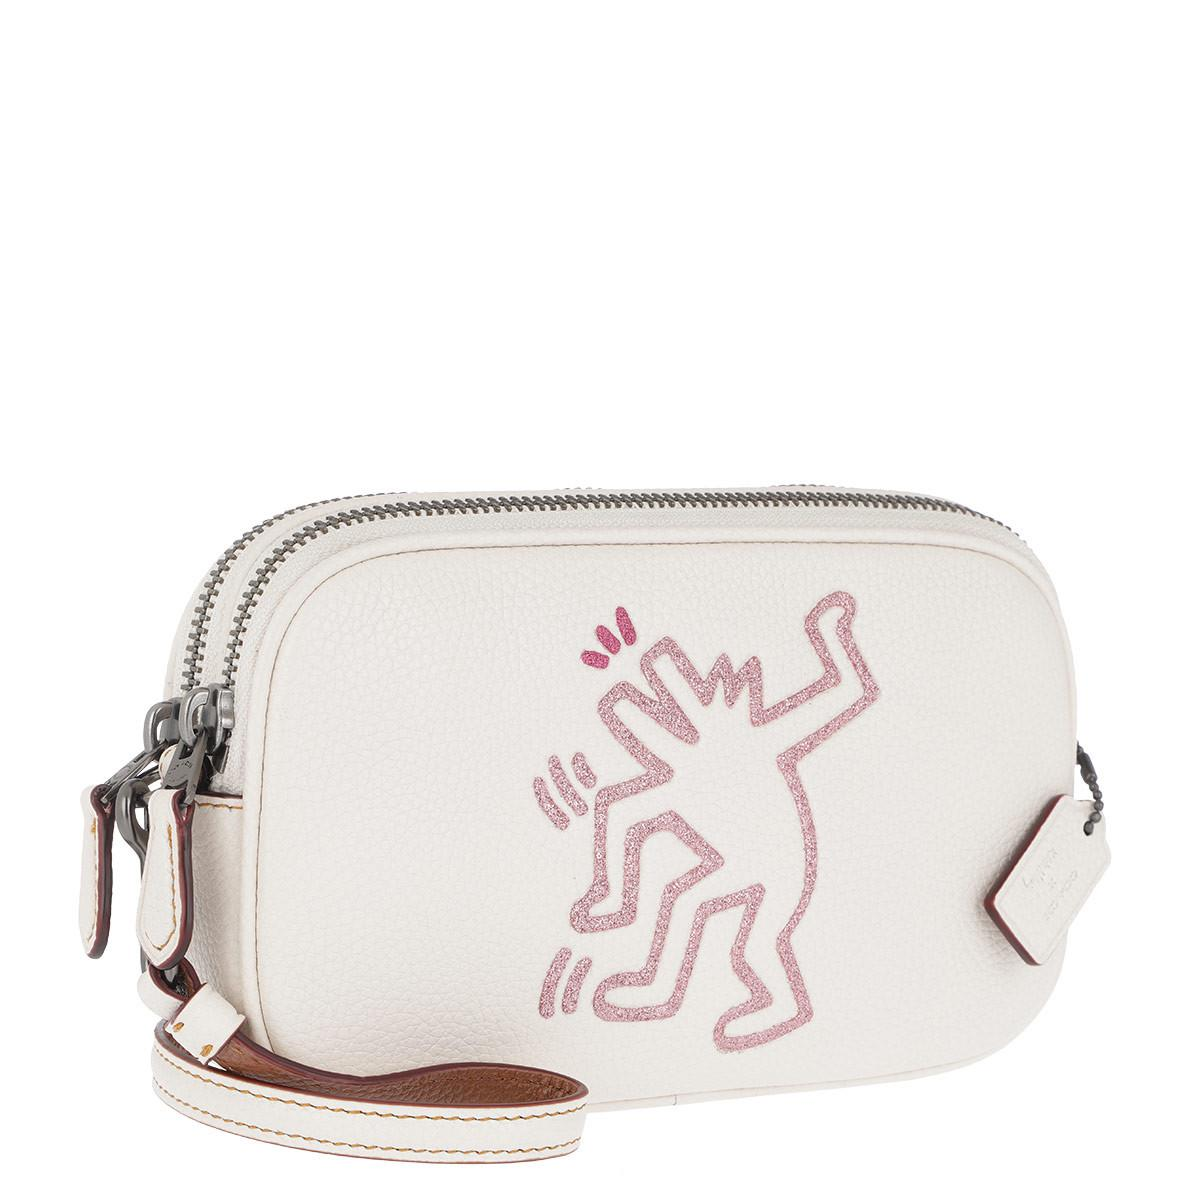 Cross Body Bags - Keith Haring Crossbody Bag Chalk - white - Cross Body Bags for ladies Coach